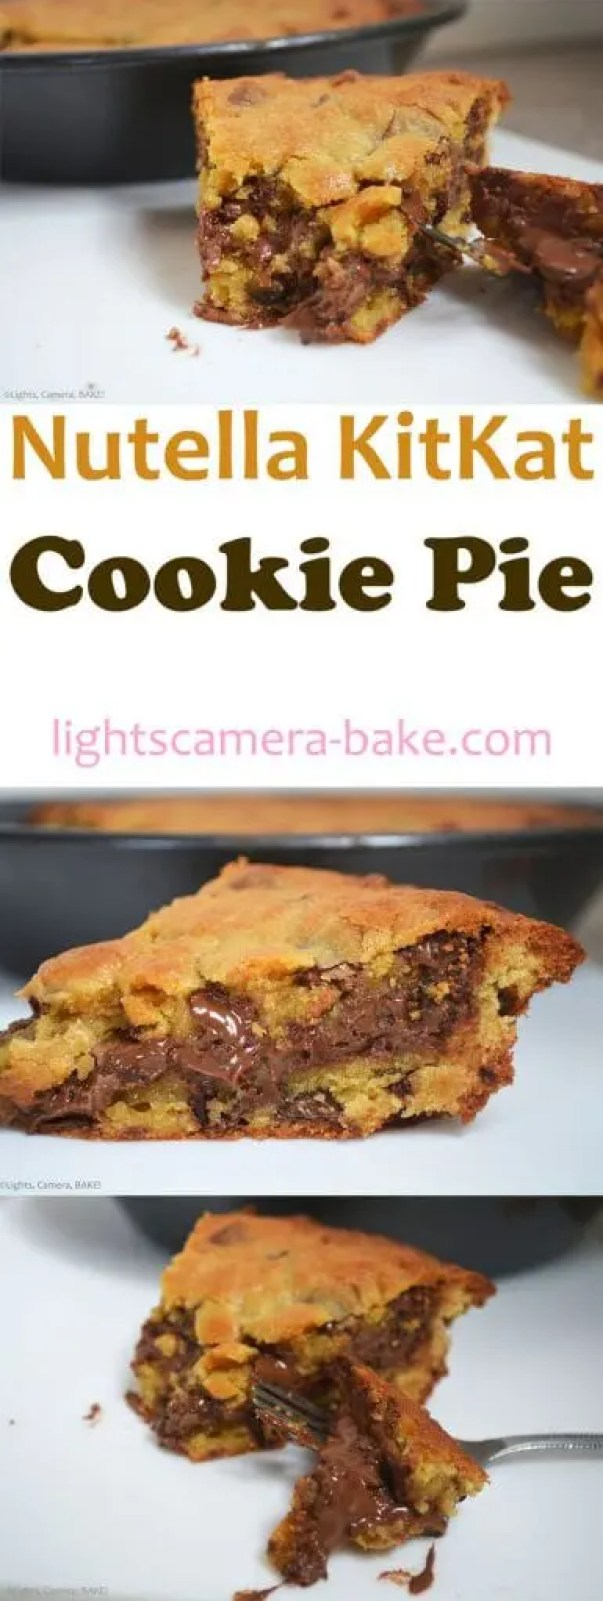 This Nutella KitKat Cookie Pie uses my favourite fuss free, fail safe, soft and chewy chocolate chip cookie pie base. I then added lightly crushed KitKats and smothered a generous layer of Nutella lovingly through the middle because.... Um hello?! Nutella!